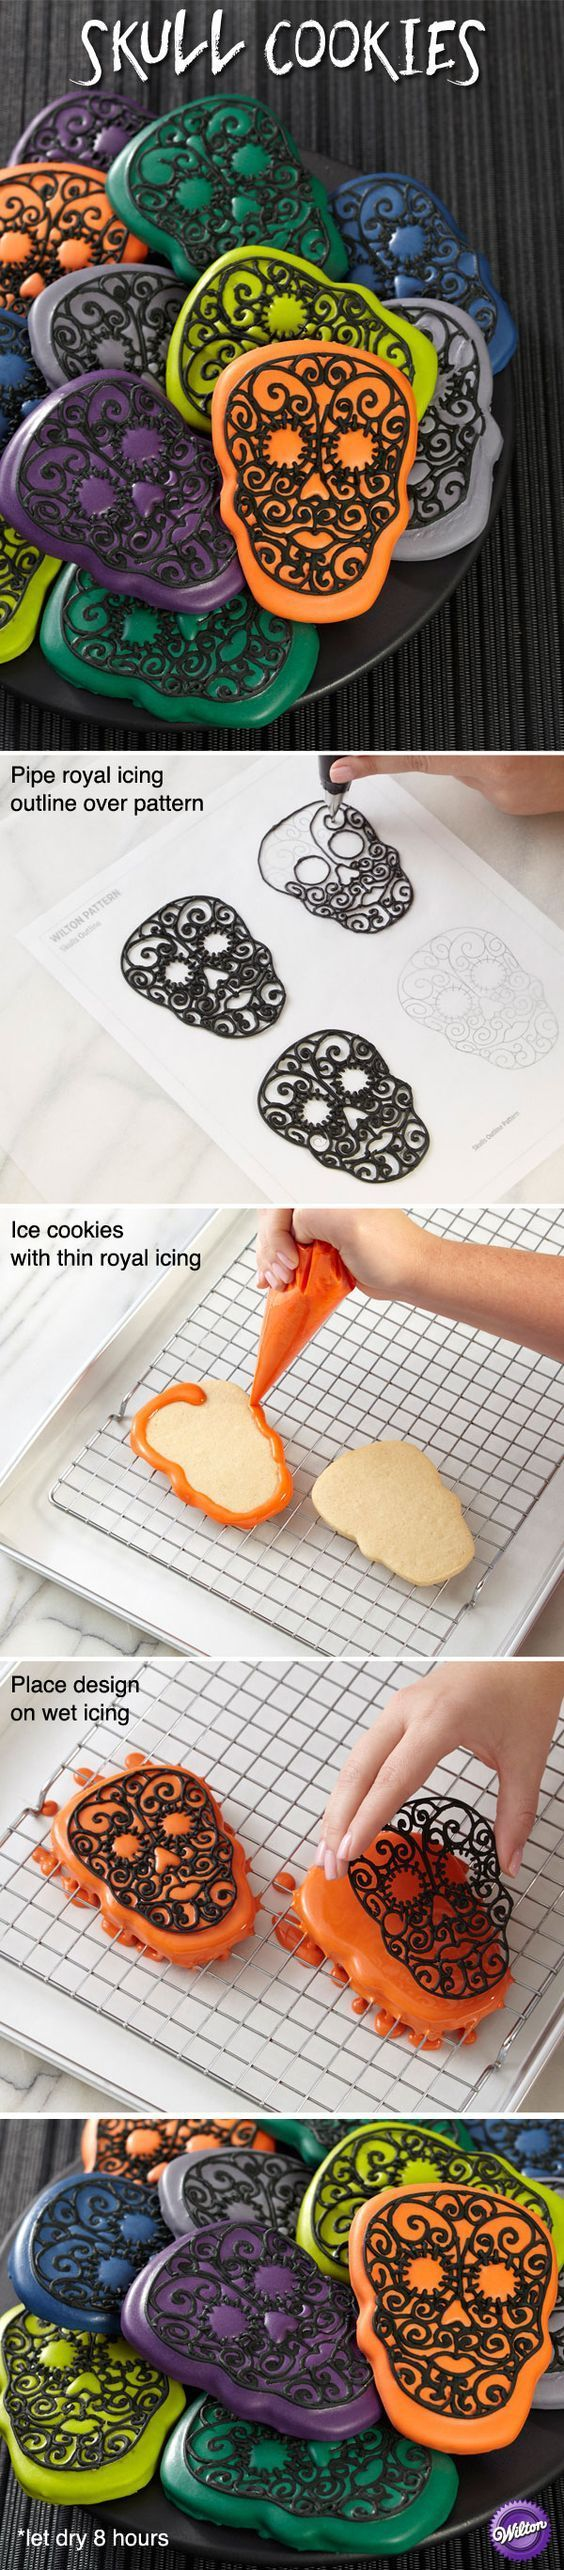 Celebrate Día de Muertos — the Day of the Dead —making traditional skull cookies in updated colors.